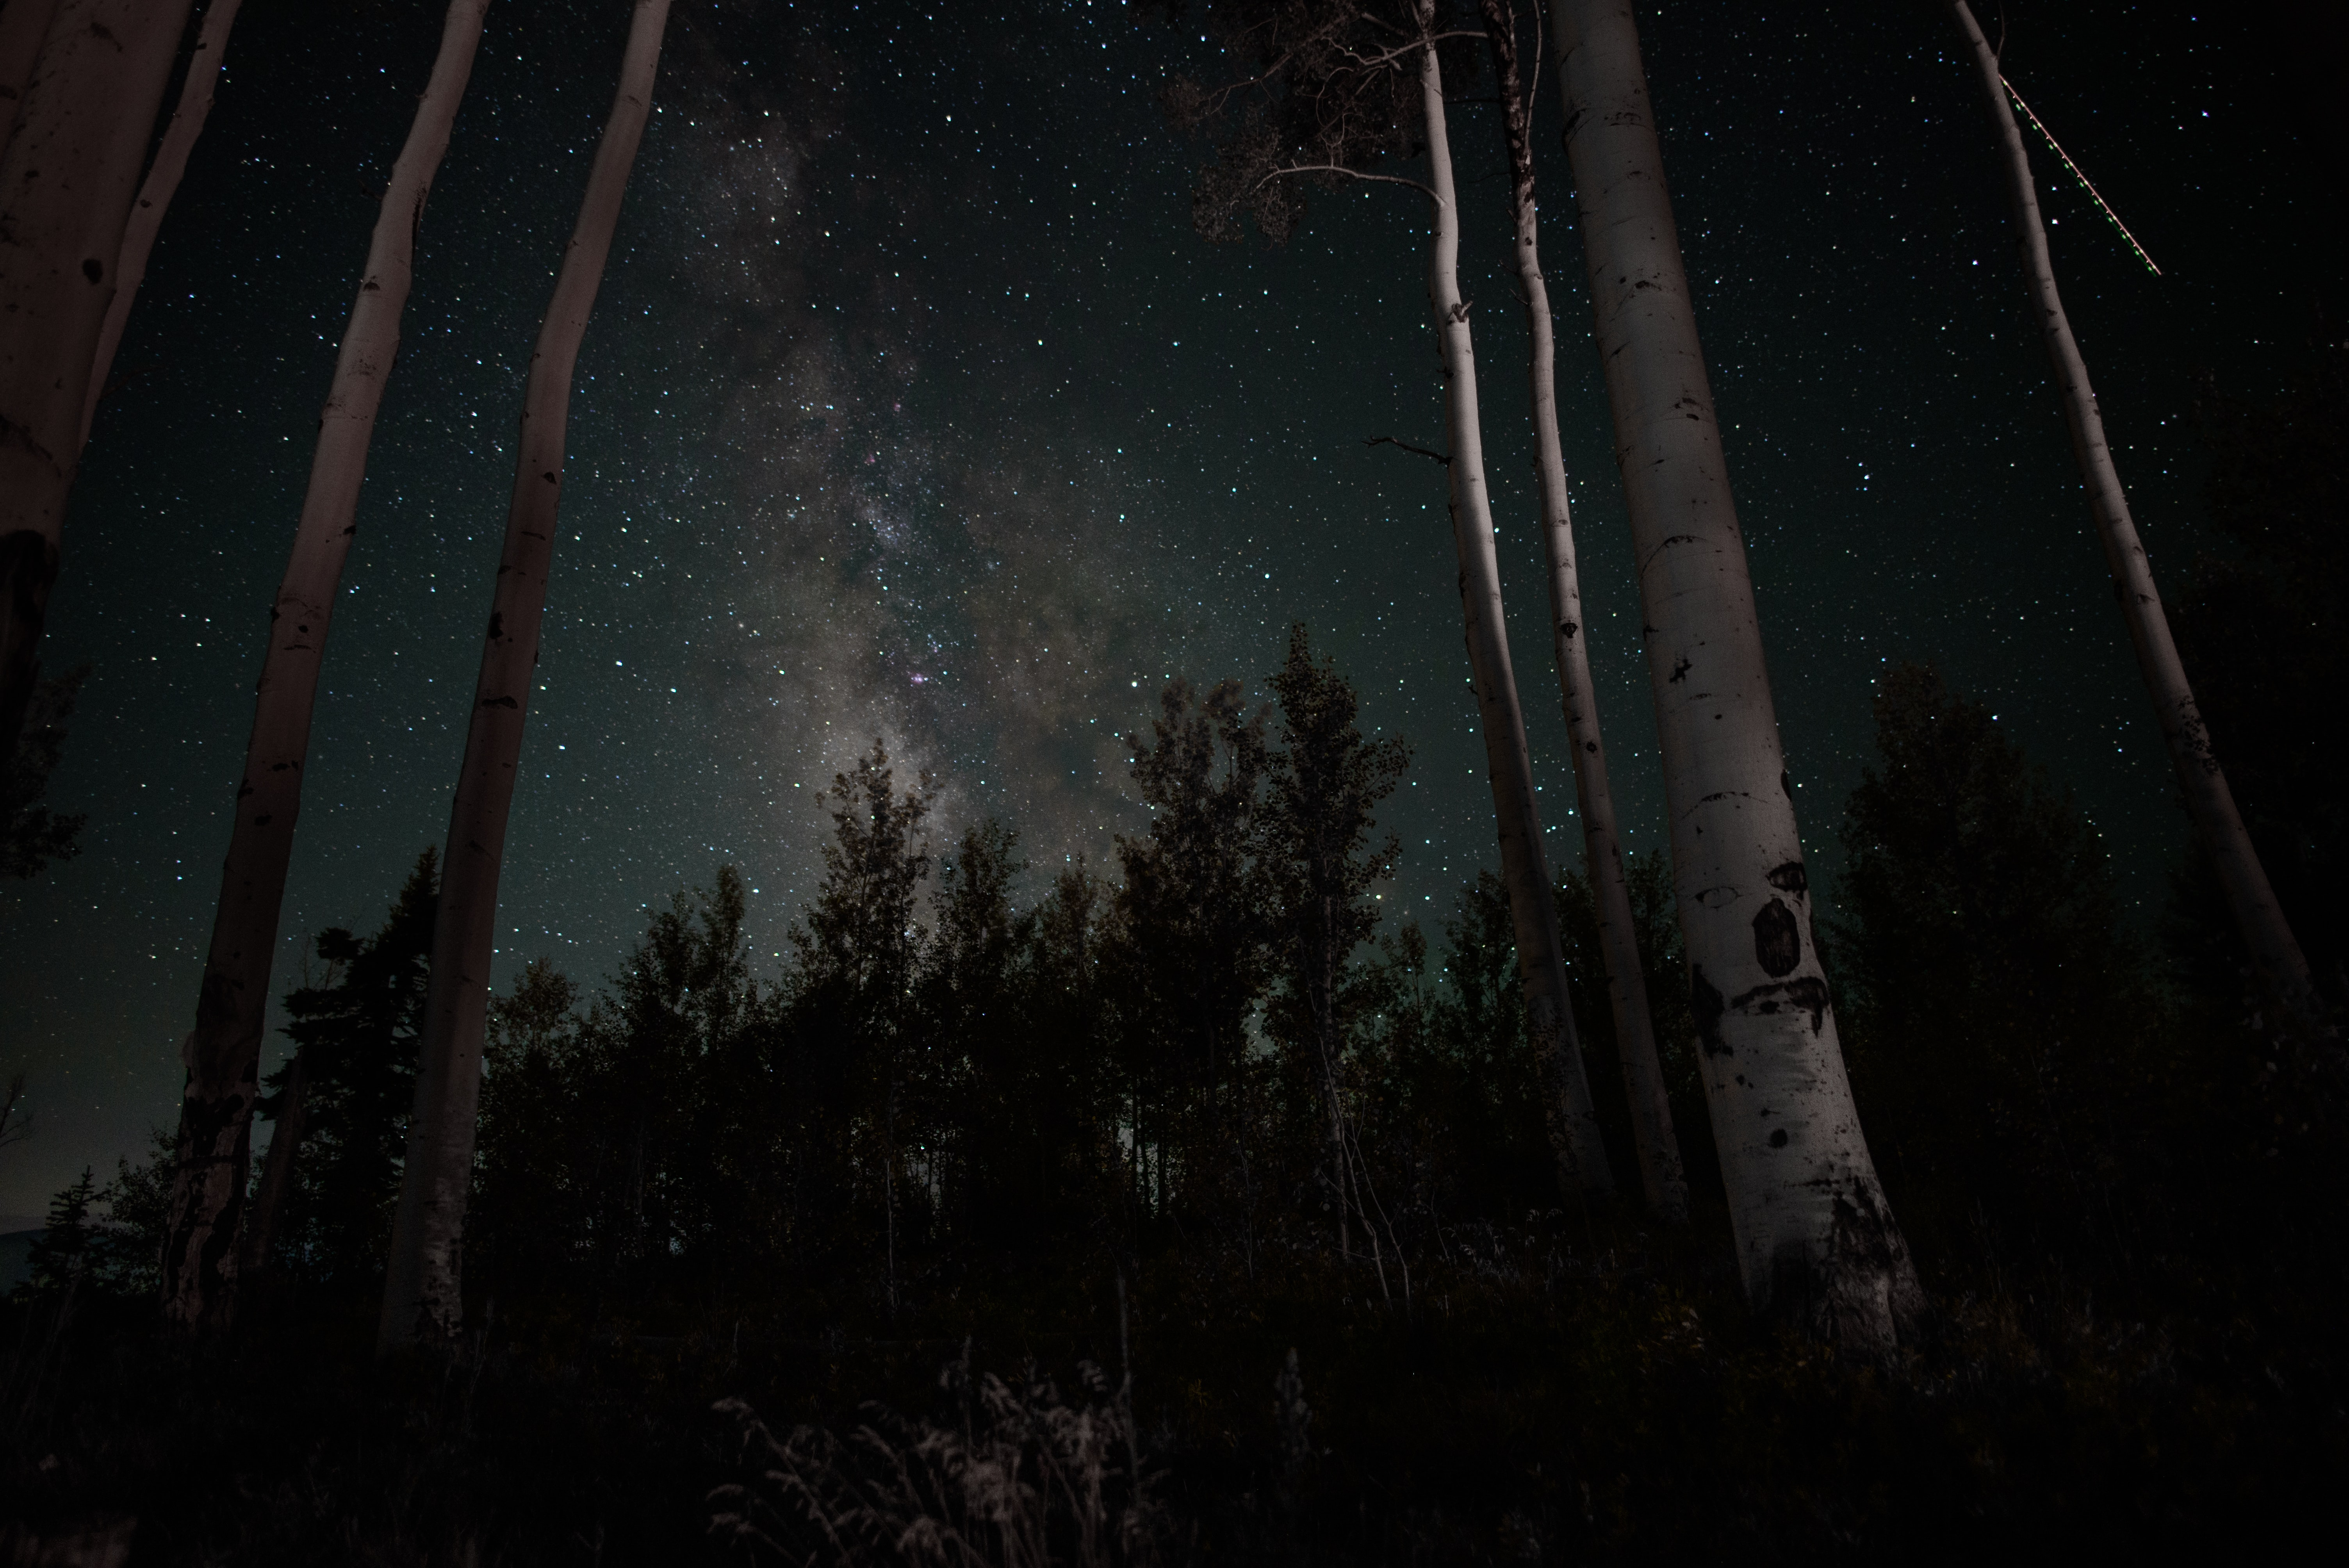 man's eyeview of forest trees during night